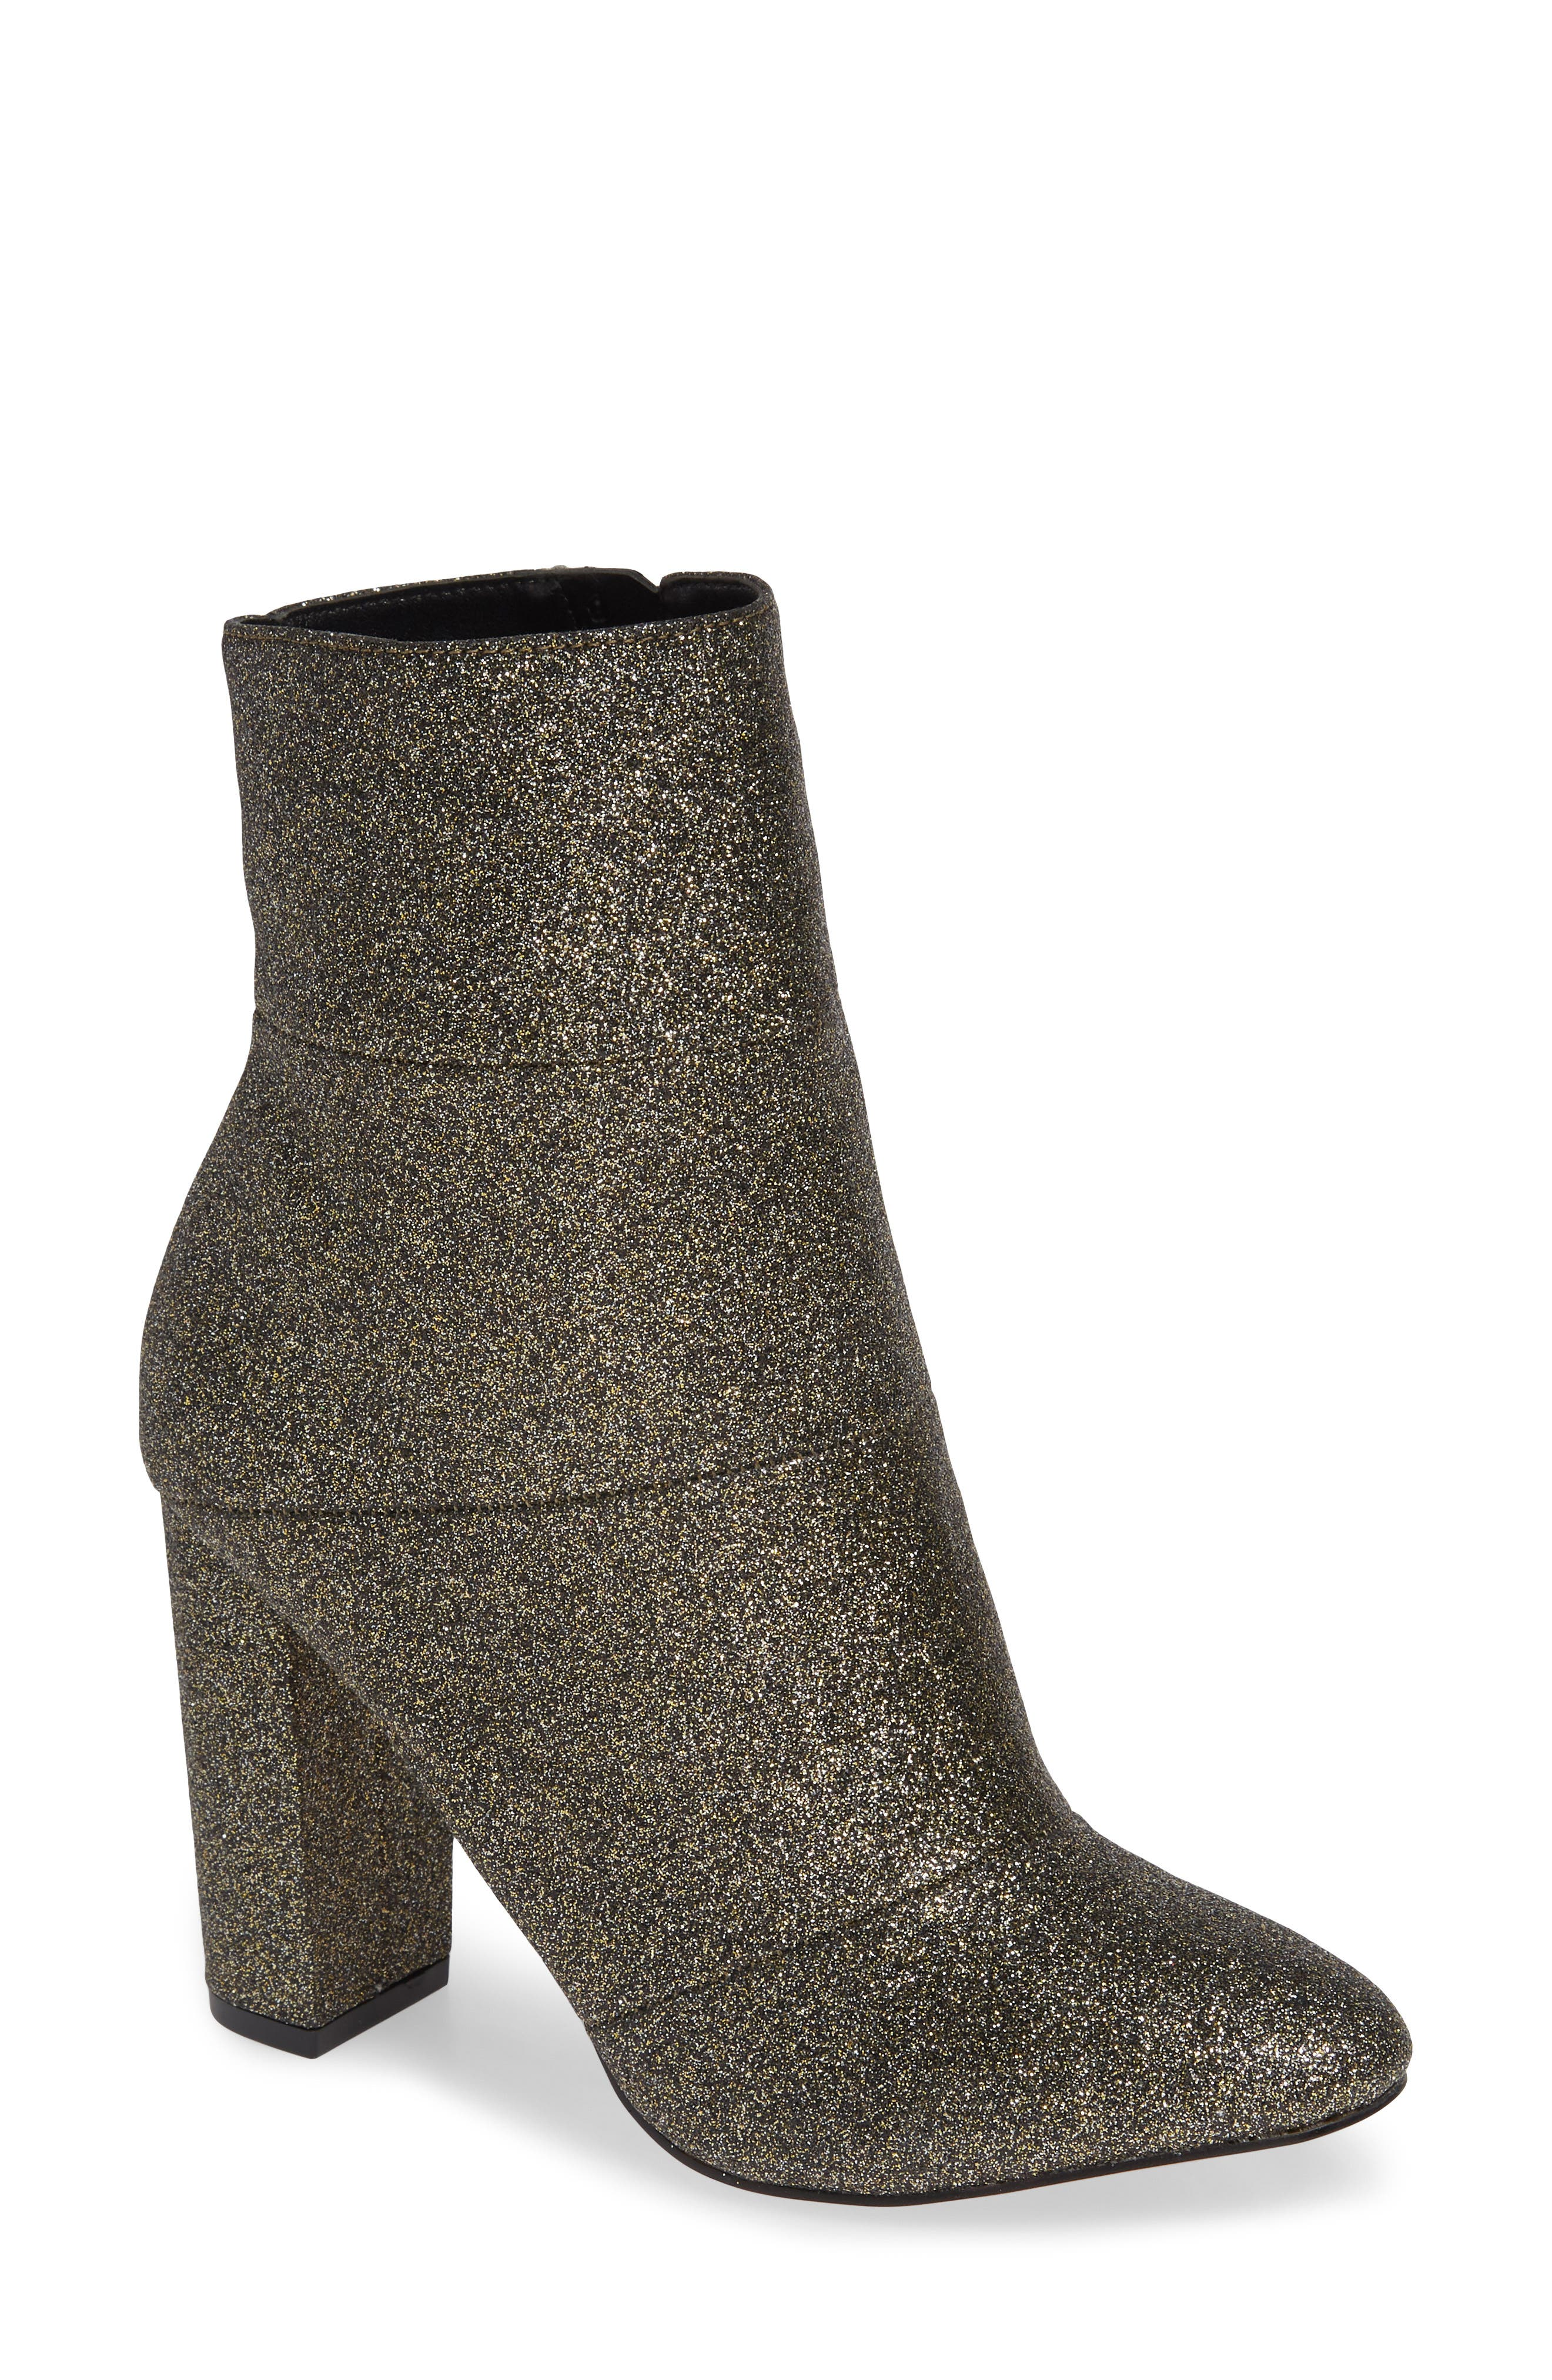 Coral Bootie,                         Main,                         color, BLACK/ GOLD GLITTER